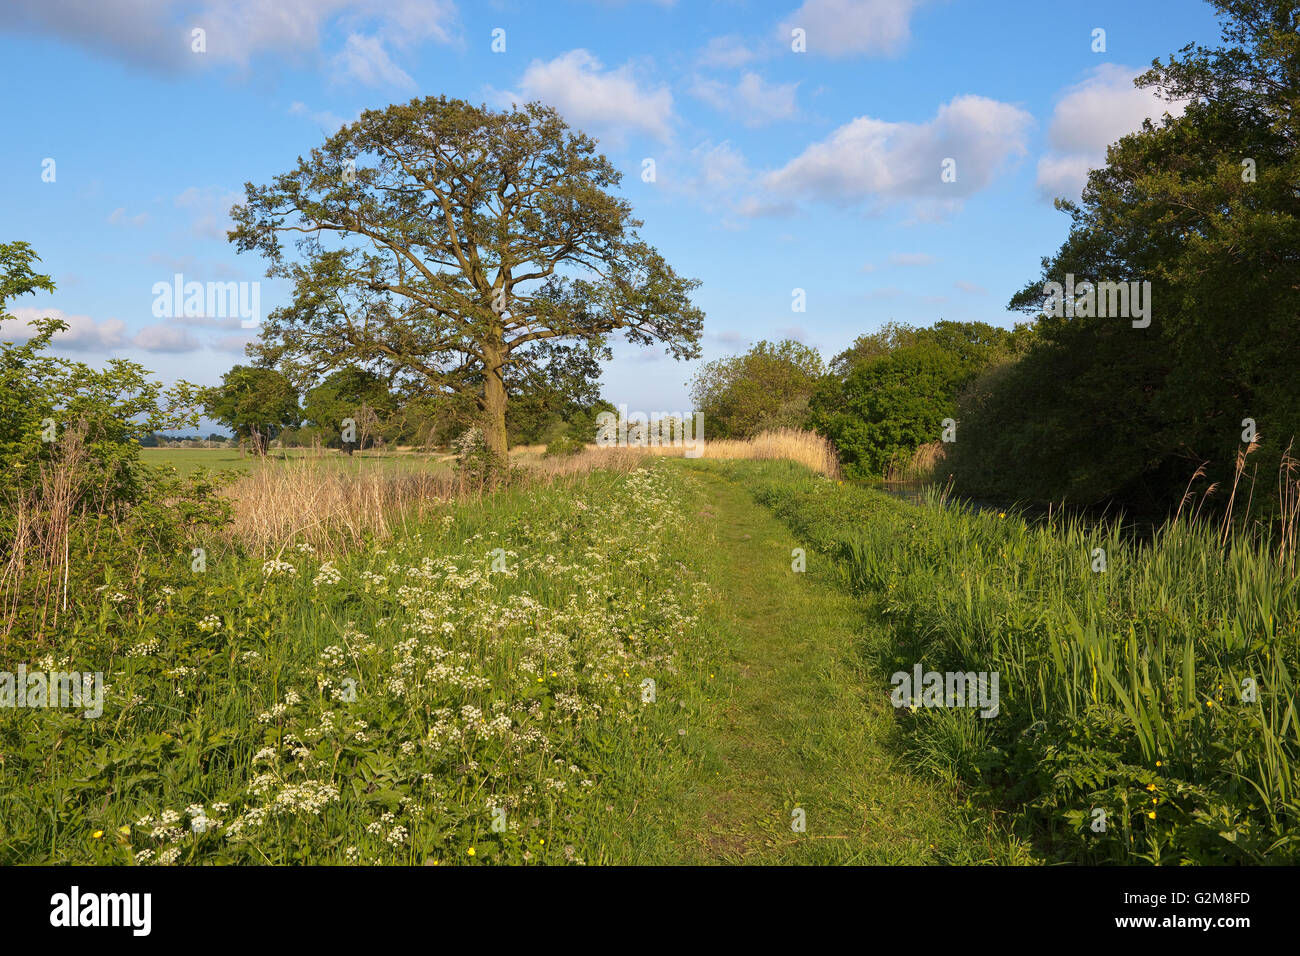 A canal towpath in May with wildflowers and an oak tree beside agricultural fields under a blue cloudy sky. - Stock Image